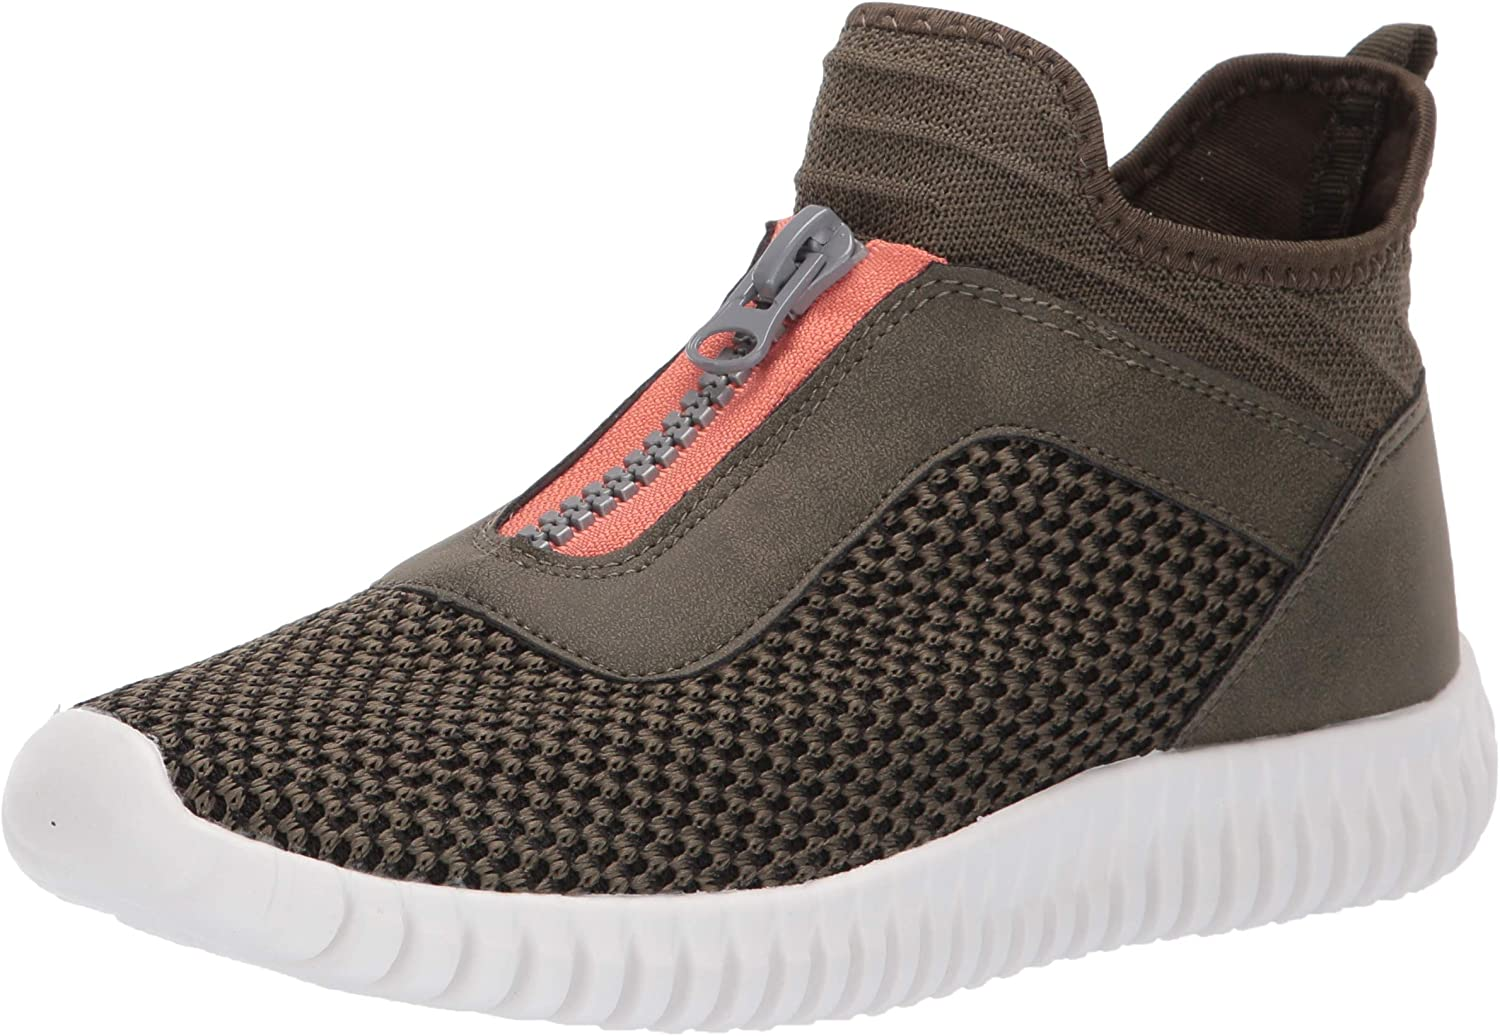 Dirty Laundry Women's Helium Sneaker